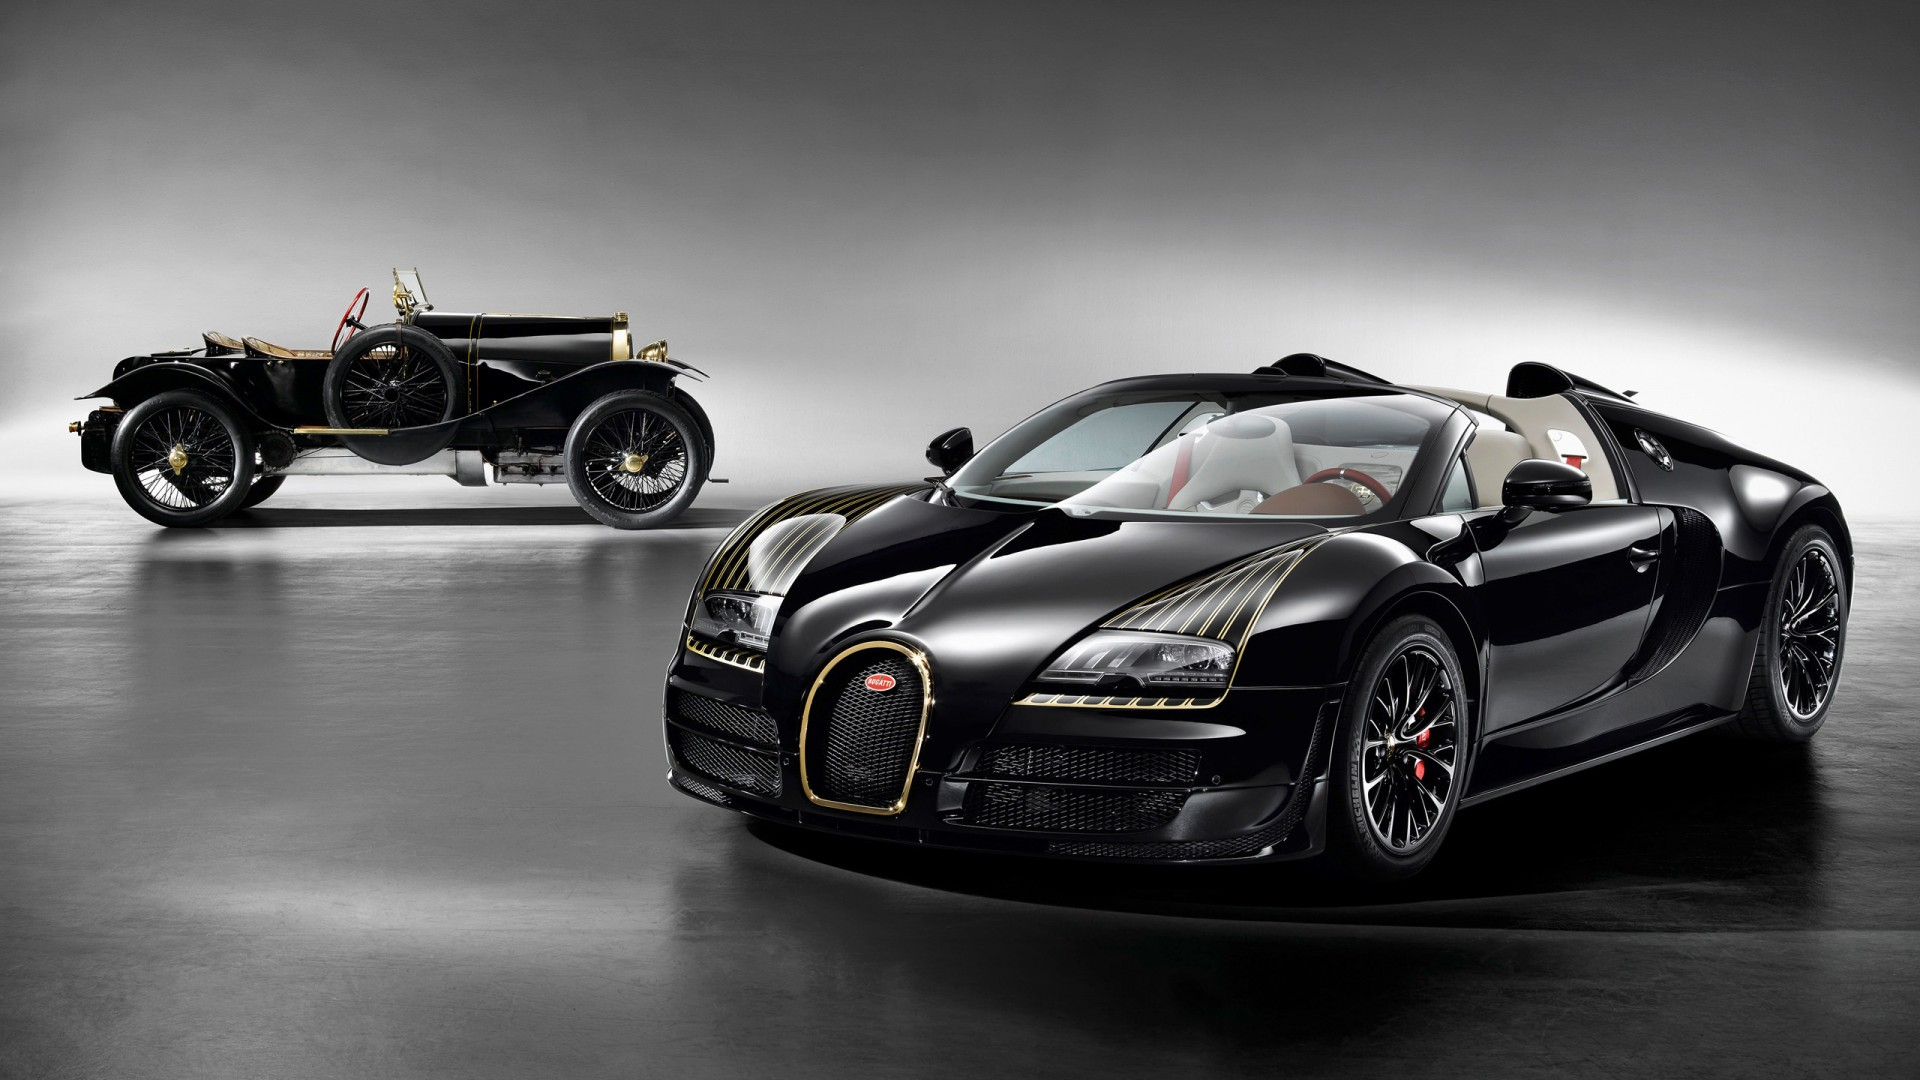 2014 bugatti veyron grand sport vitesse legend black bess 5 wallpaper hd car wallpapers. Black Bedroom Furniture Sets. Home Design Ideas